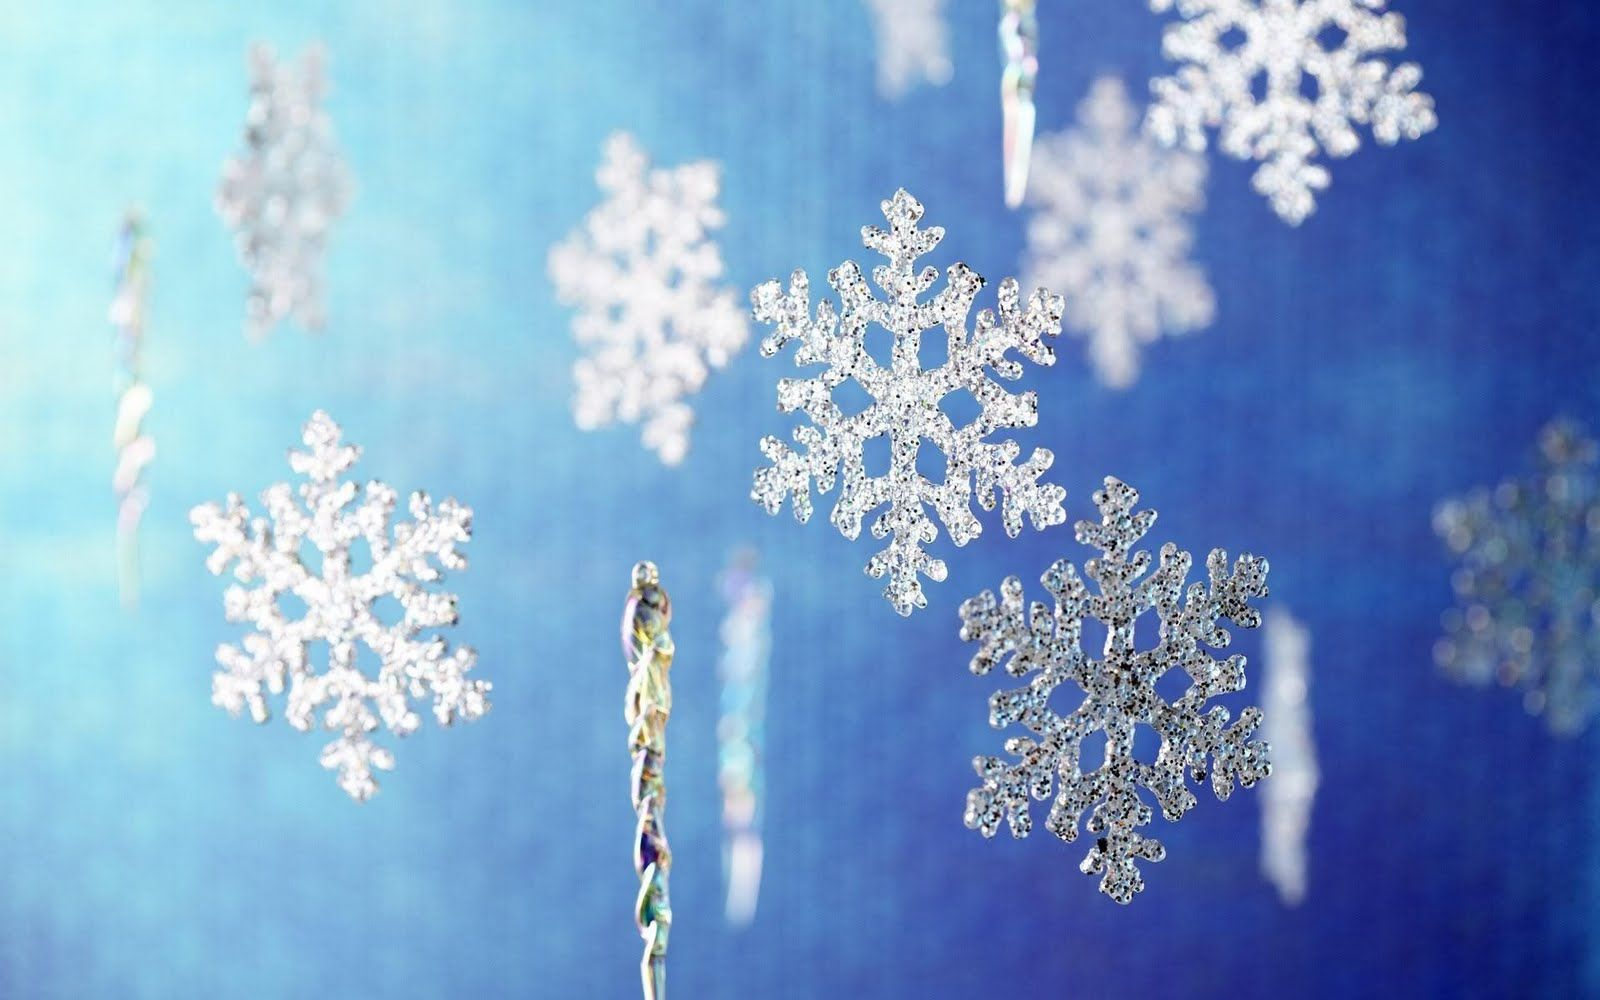 medium resolution of free clip art of snowflakes free jesus christ pictures christian images religious wallpapers